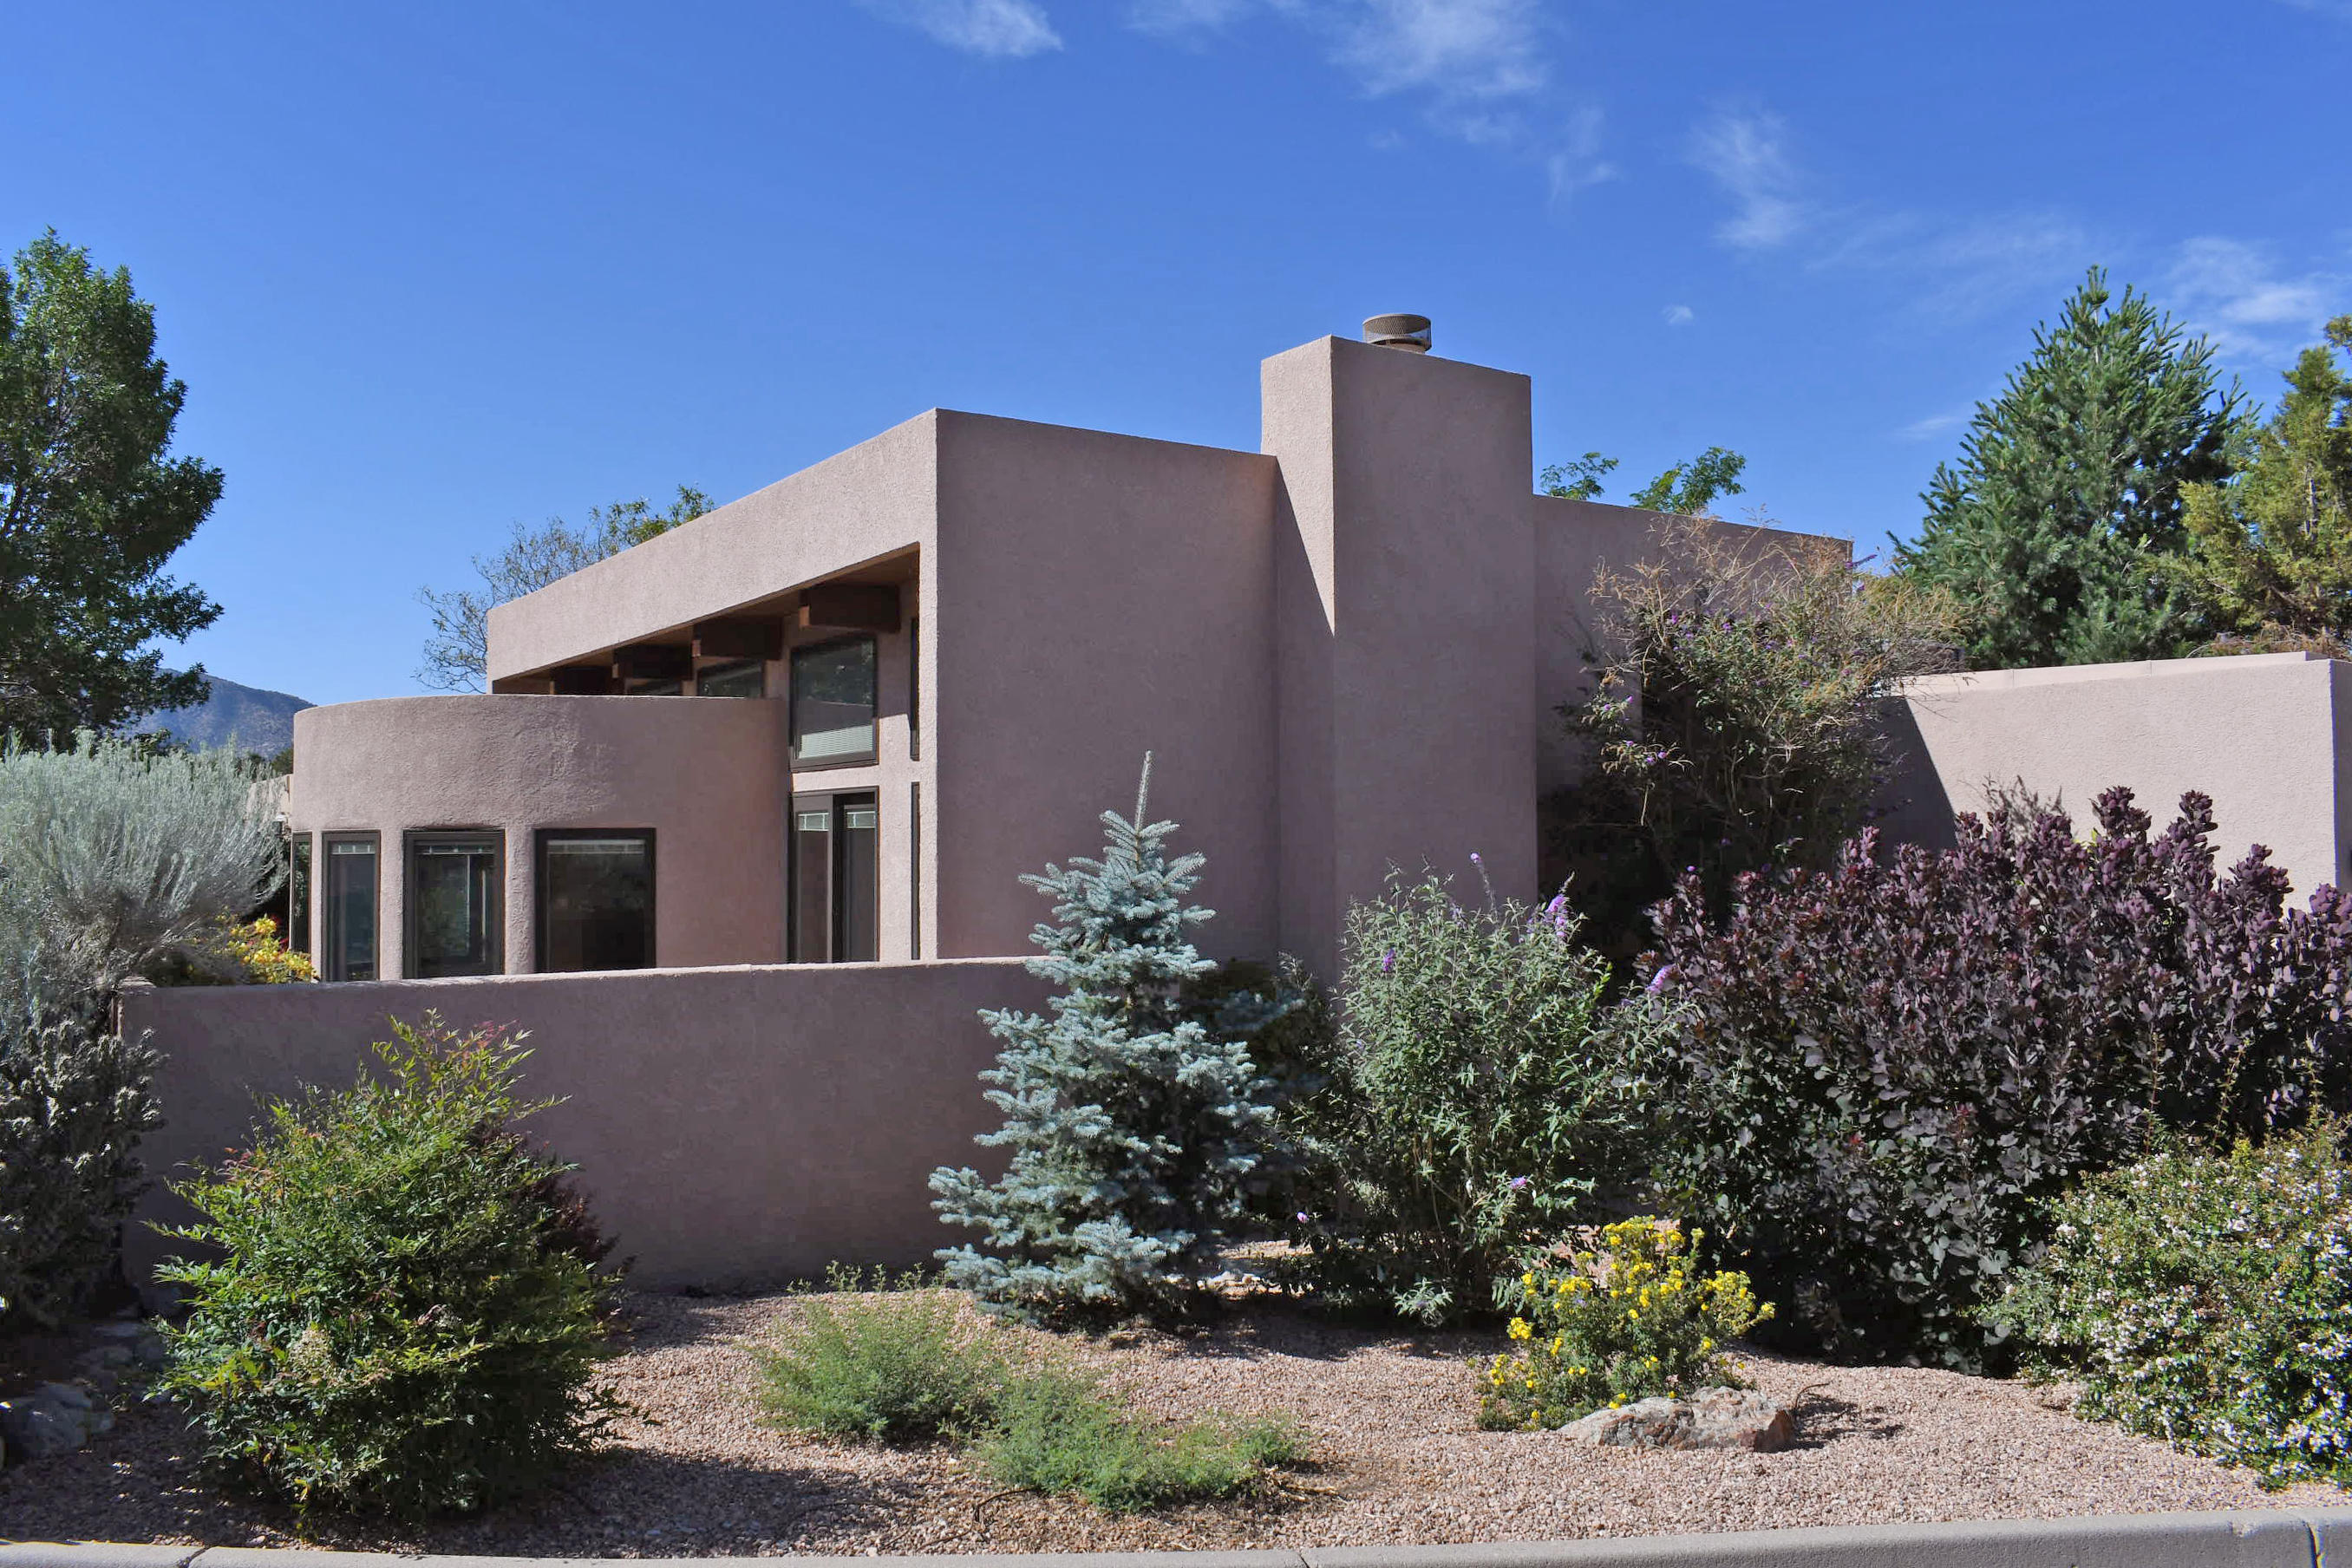 Elegance abounds in this updated, sophisticated Roger Smith jewel nestled at the base of the Sandias.Custom Entry Door.Triple pane low E Pella windows frame stunning views of the Sandias & path of the Tram.New carpet & entry flooring;Granite counter tops through out.Fresh paint;CA closet shelving w/shoe cubbies;Lg MBR closet includes 'hidden' closet for expansion. Charming Sunroom could be office, workout, hobby, studio, or at-home schooling room.Fully irrigated landscaping w/raised garden beds, seasonal blooms & patios surround the exterior. Finished 3 car heated & cooled garage. 7.2 KW wholly owned solar elecric & other systems provide unparalleled comfort, control & economy (ask about Net Metering) A FABULOUS MUST SEE TODAY!!